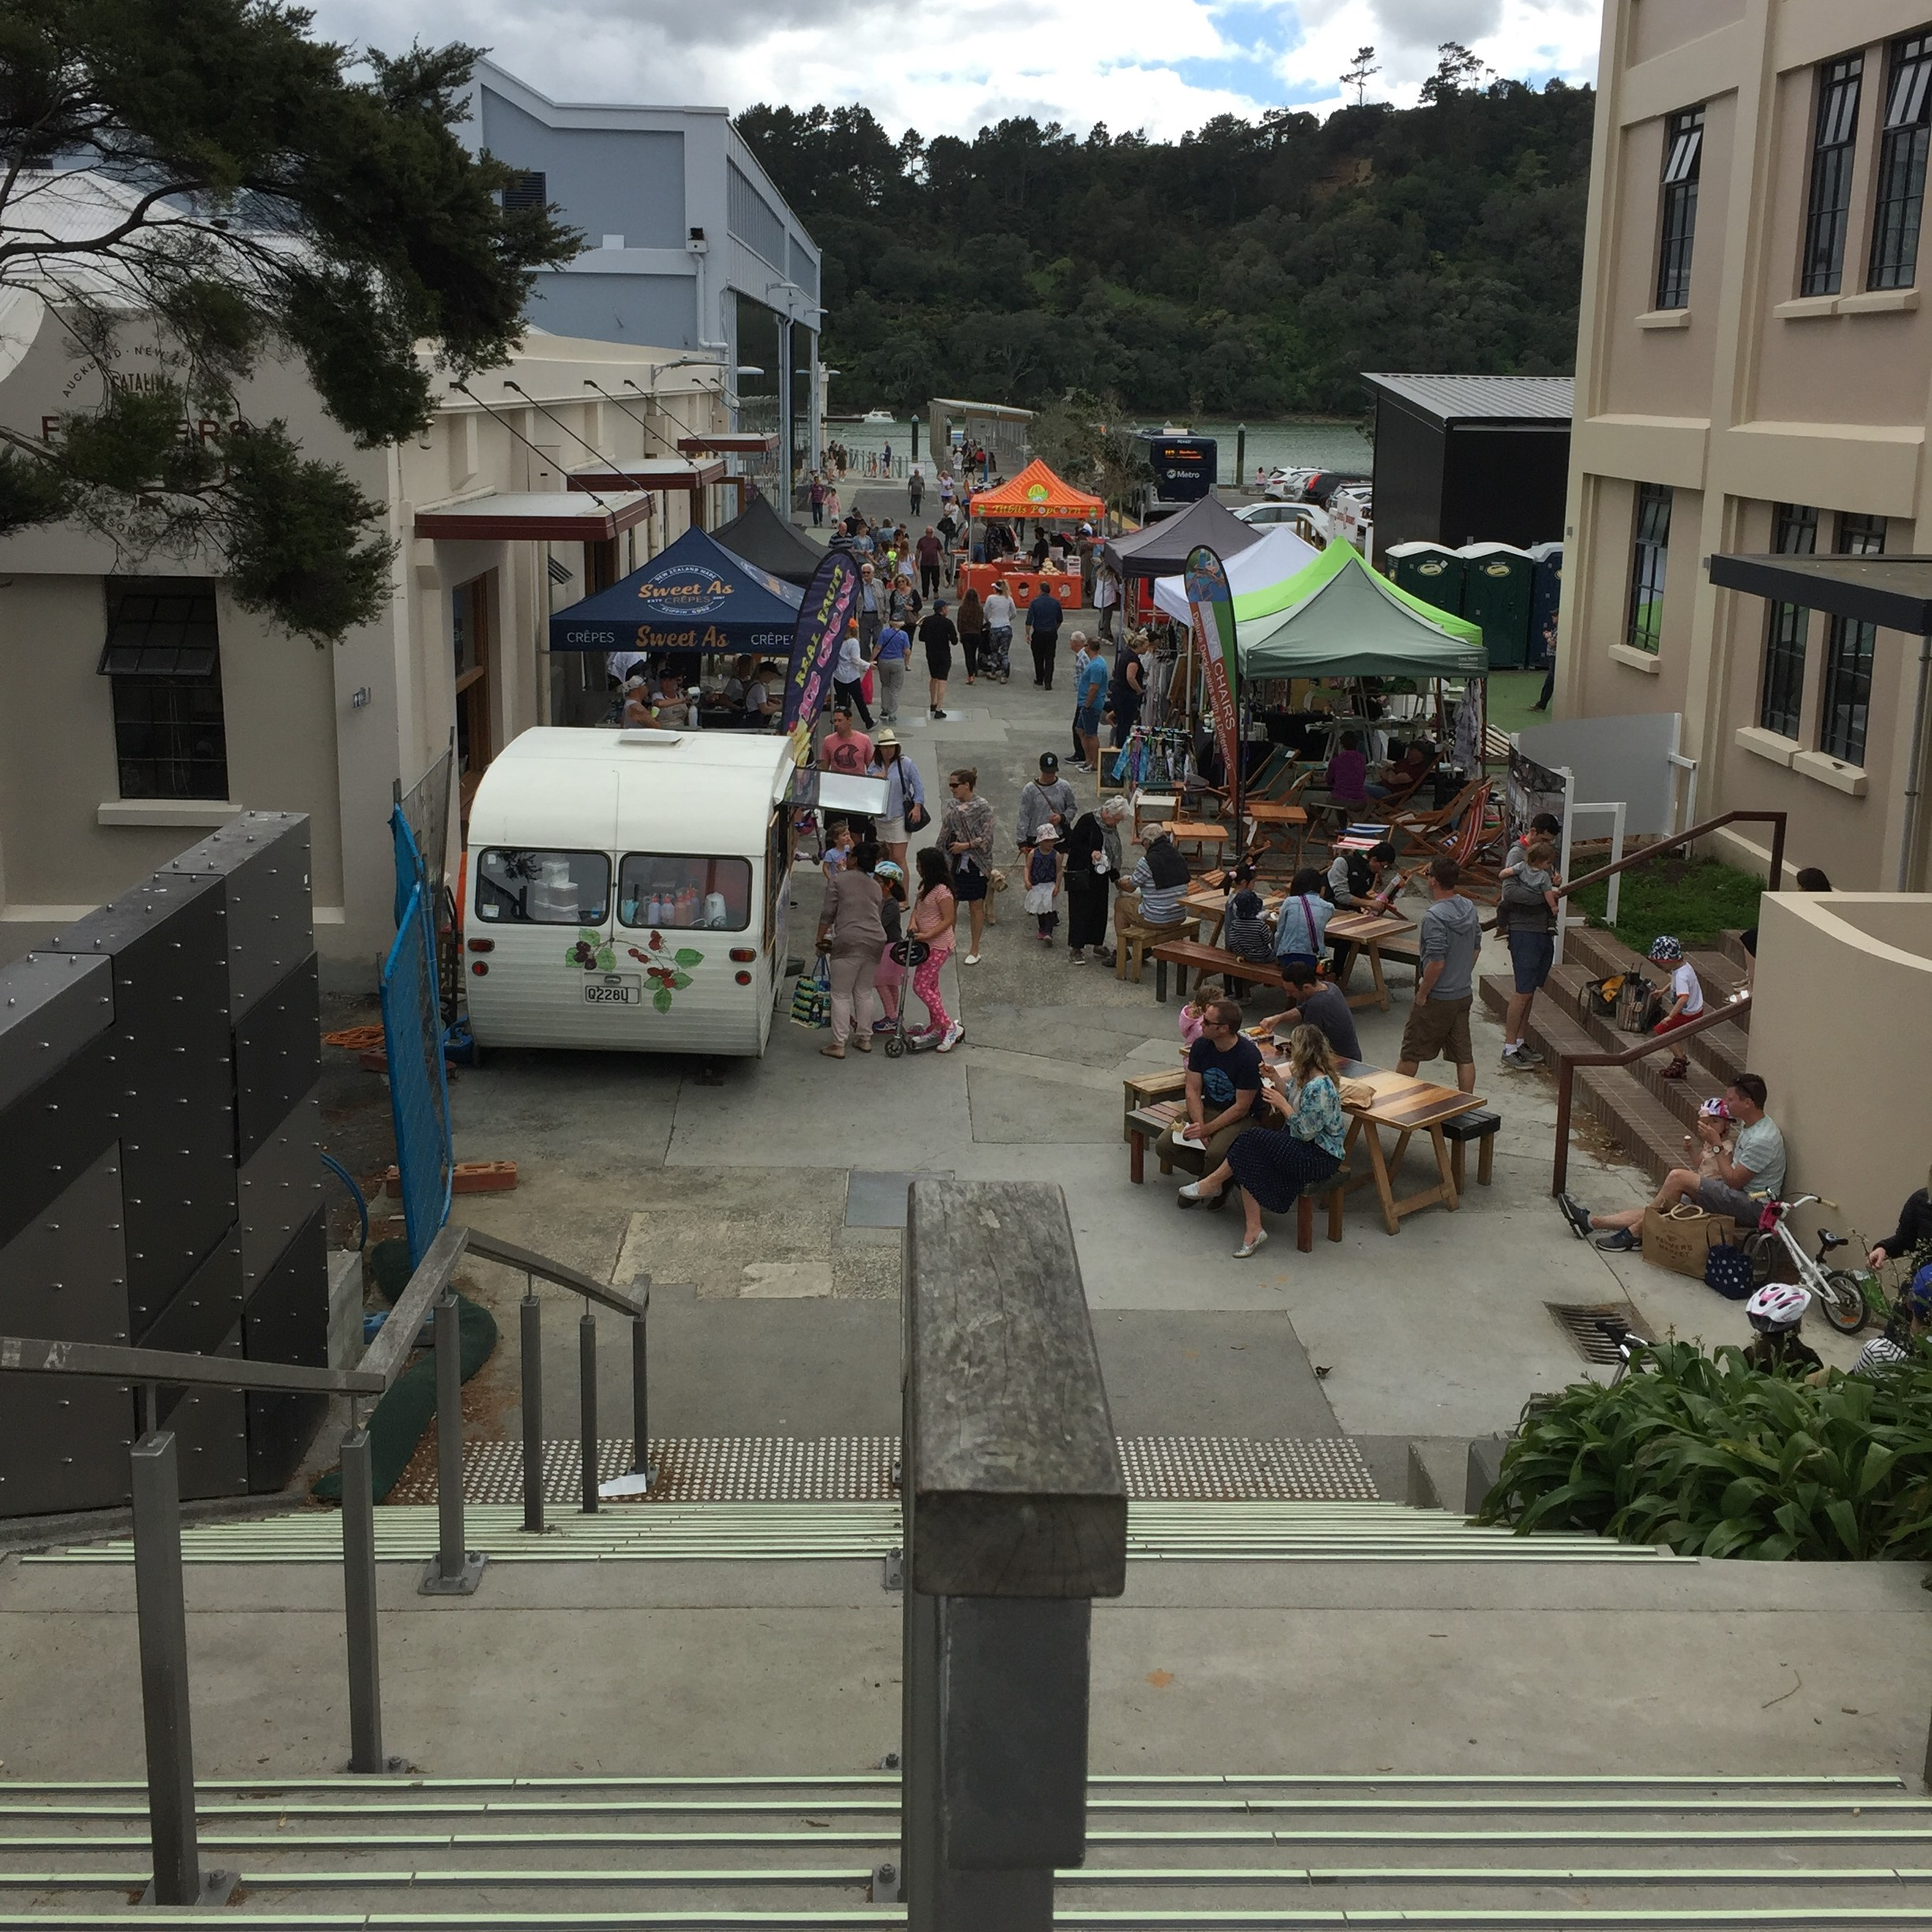 Join the throngs of people enjoying the weekend market